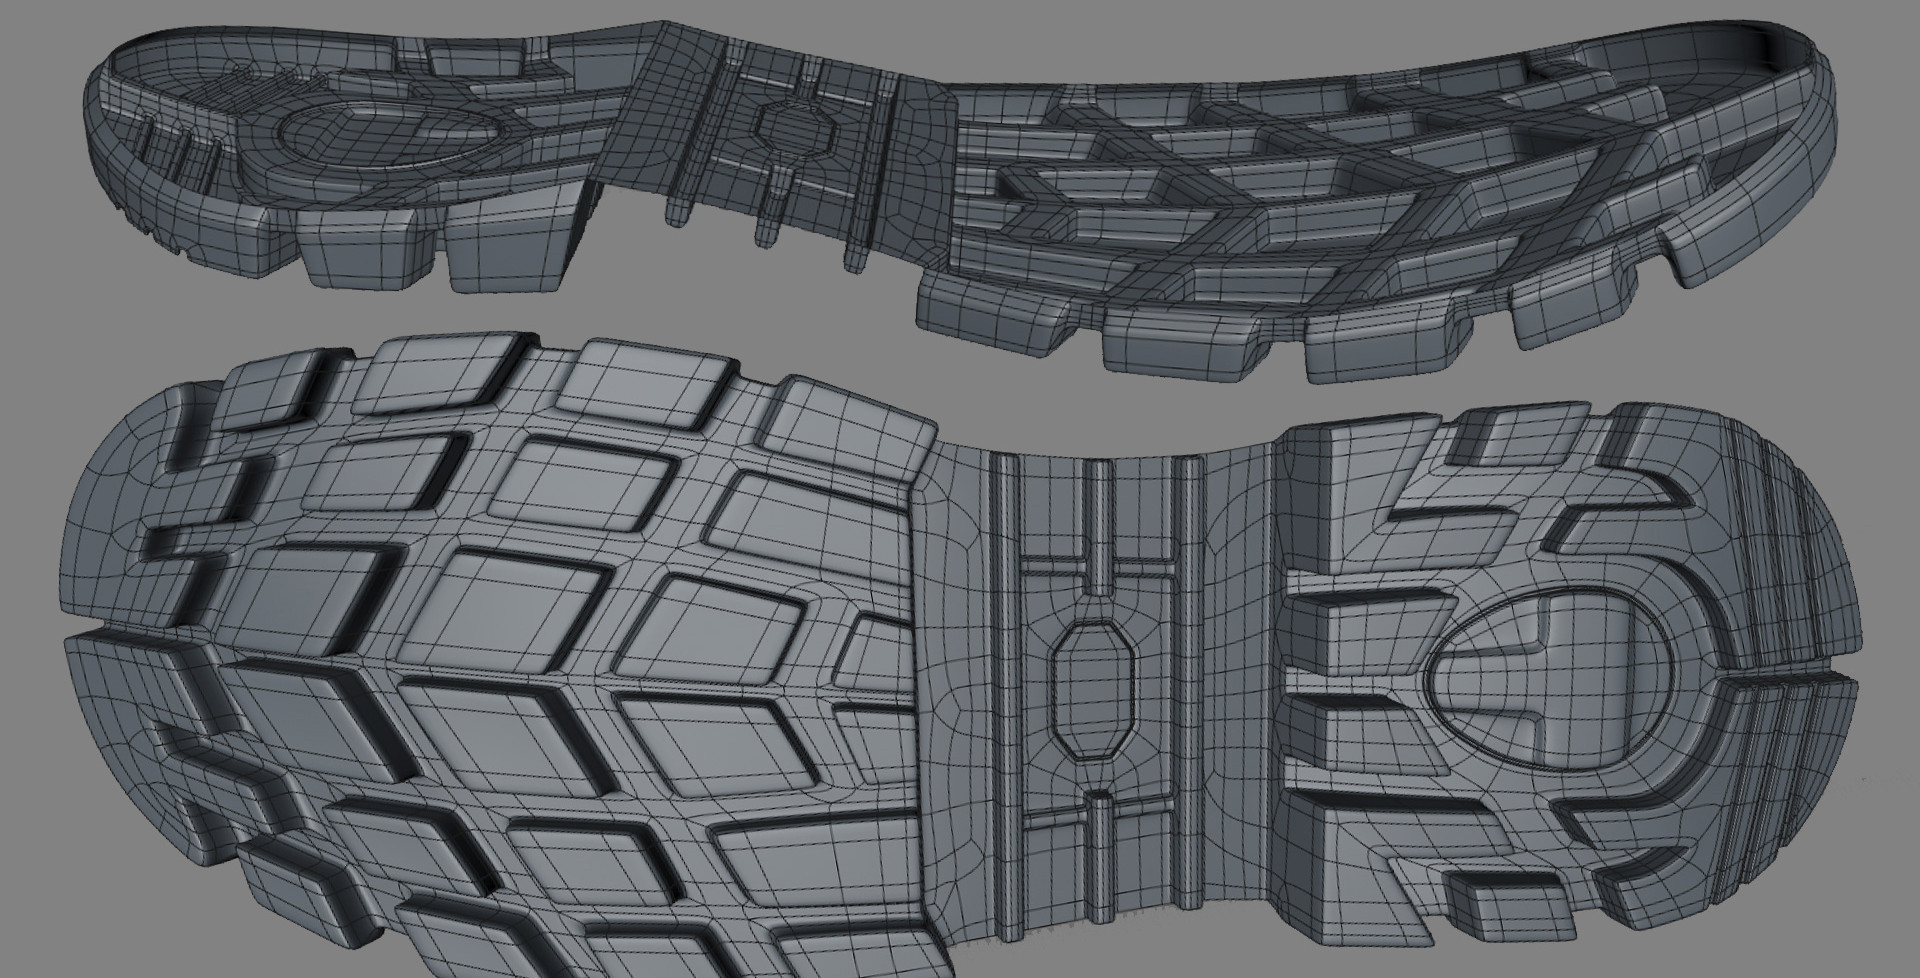 Extruded the sides outwards and reworked some of the topology.